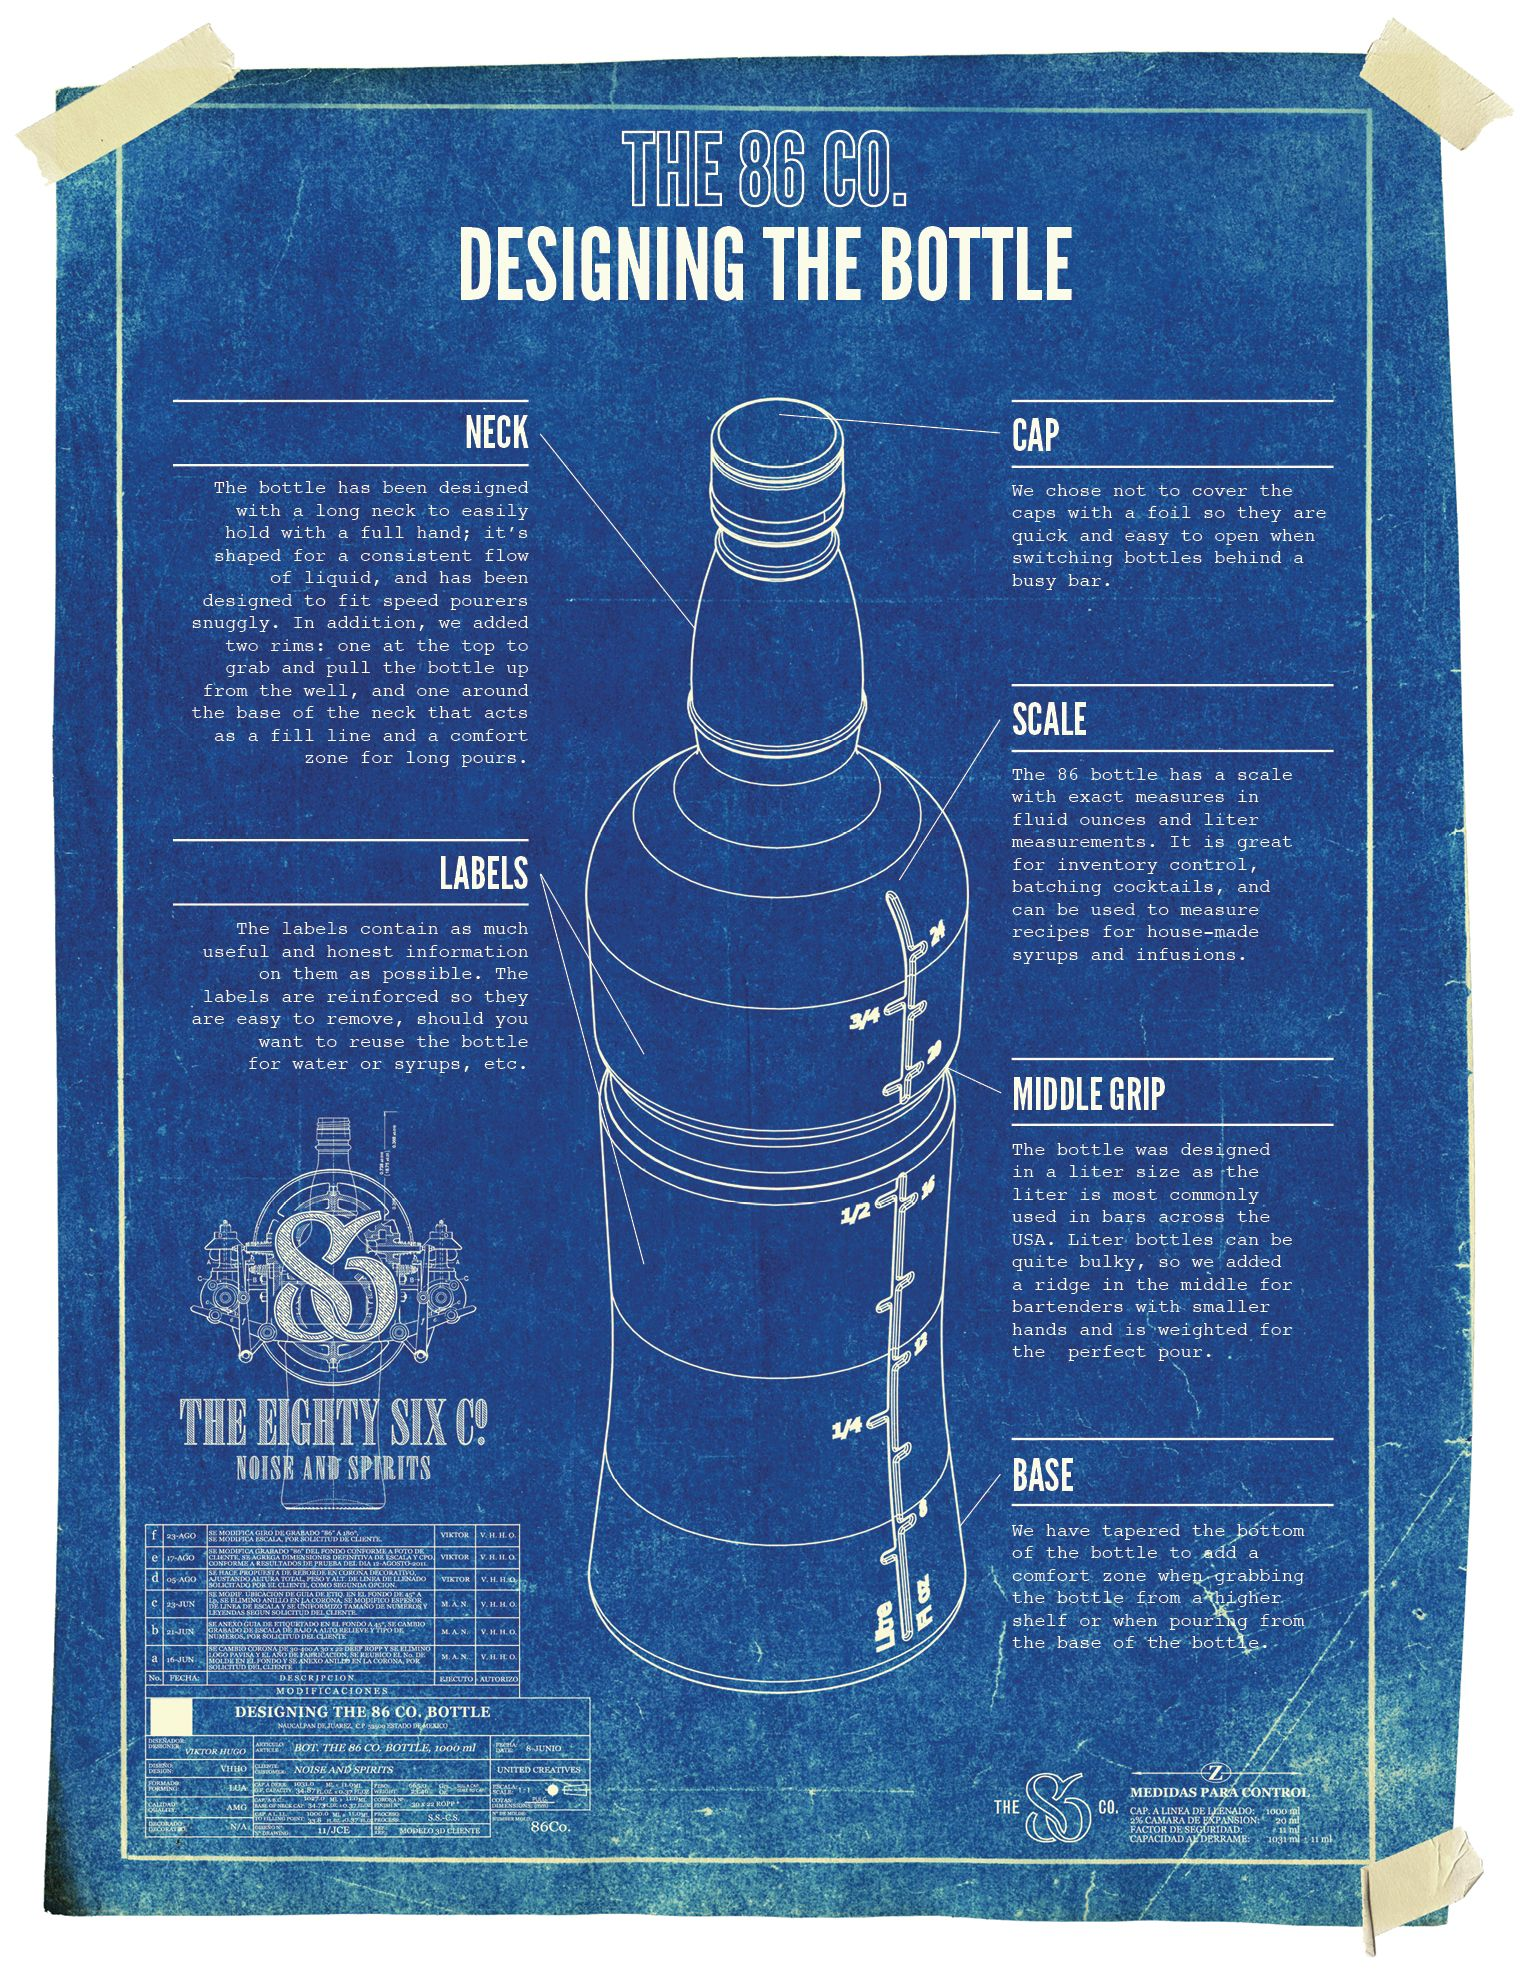 Bottle Blueprint Design For The 86 Co New York By United